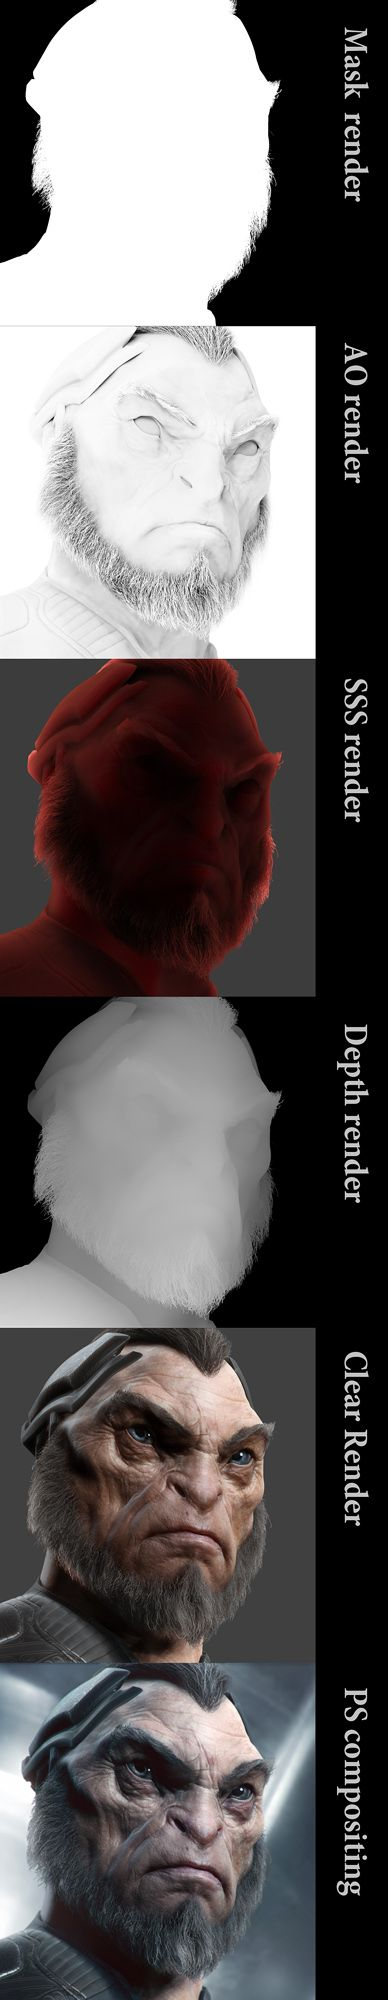 3D render by PSTCHOART using ZBrush 4 R3 Seeing Render Layers like this is always useful and helpful. Enjoy